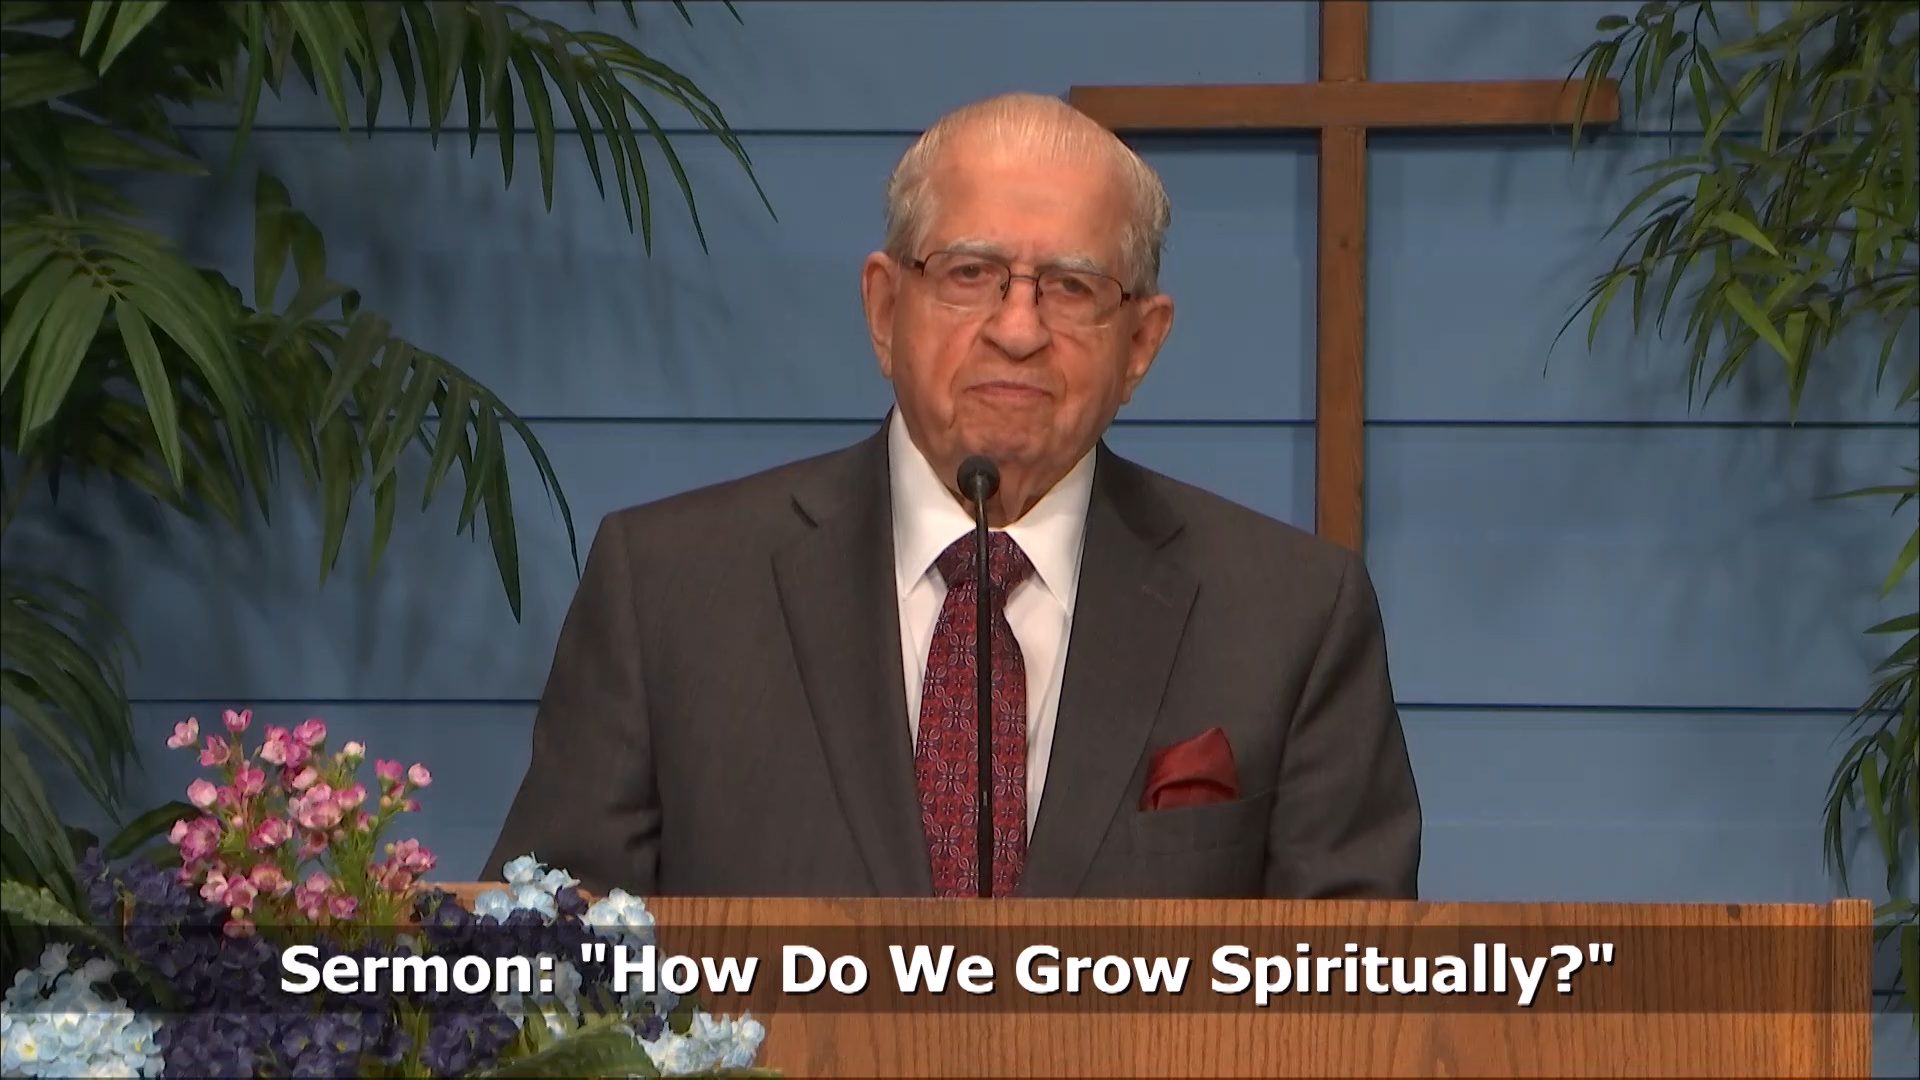 How Do We Grow Spiritually?